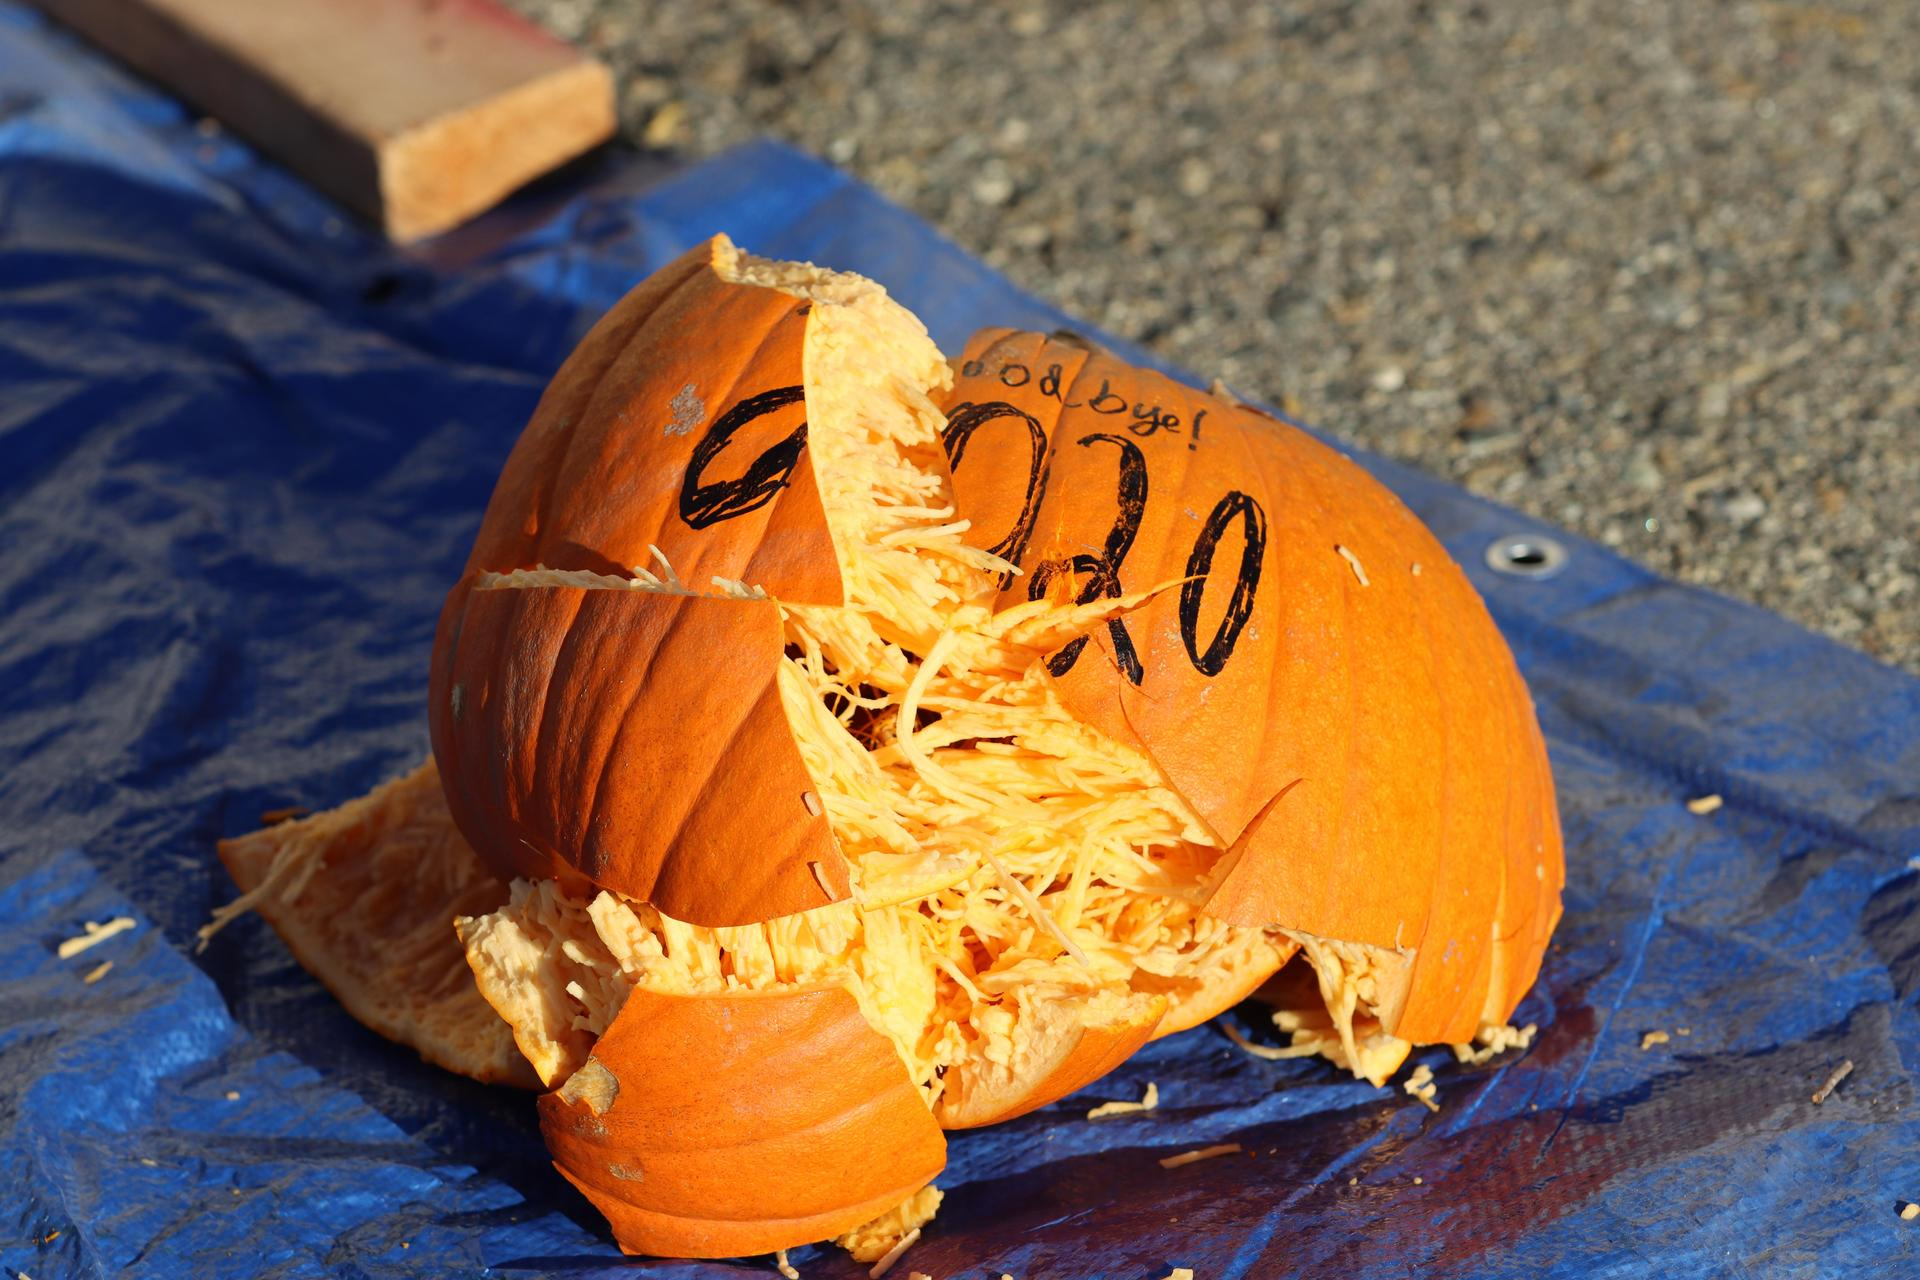 The '2020' pumpkin after impact.